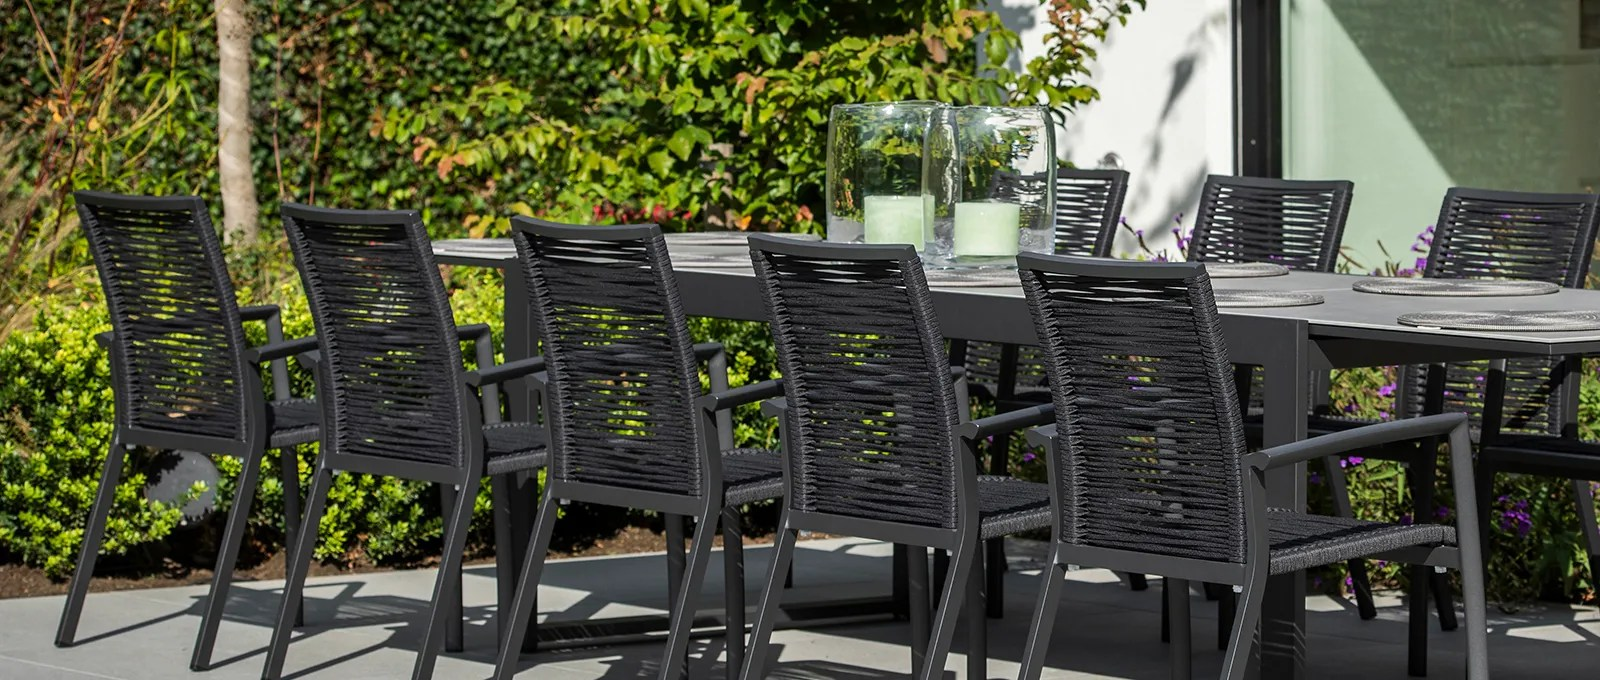 Onland Outdoor Furniture Outdoor Furniture Melbourne Sydney Newcastle Erina Canberra